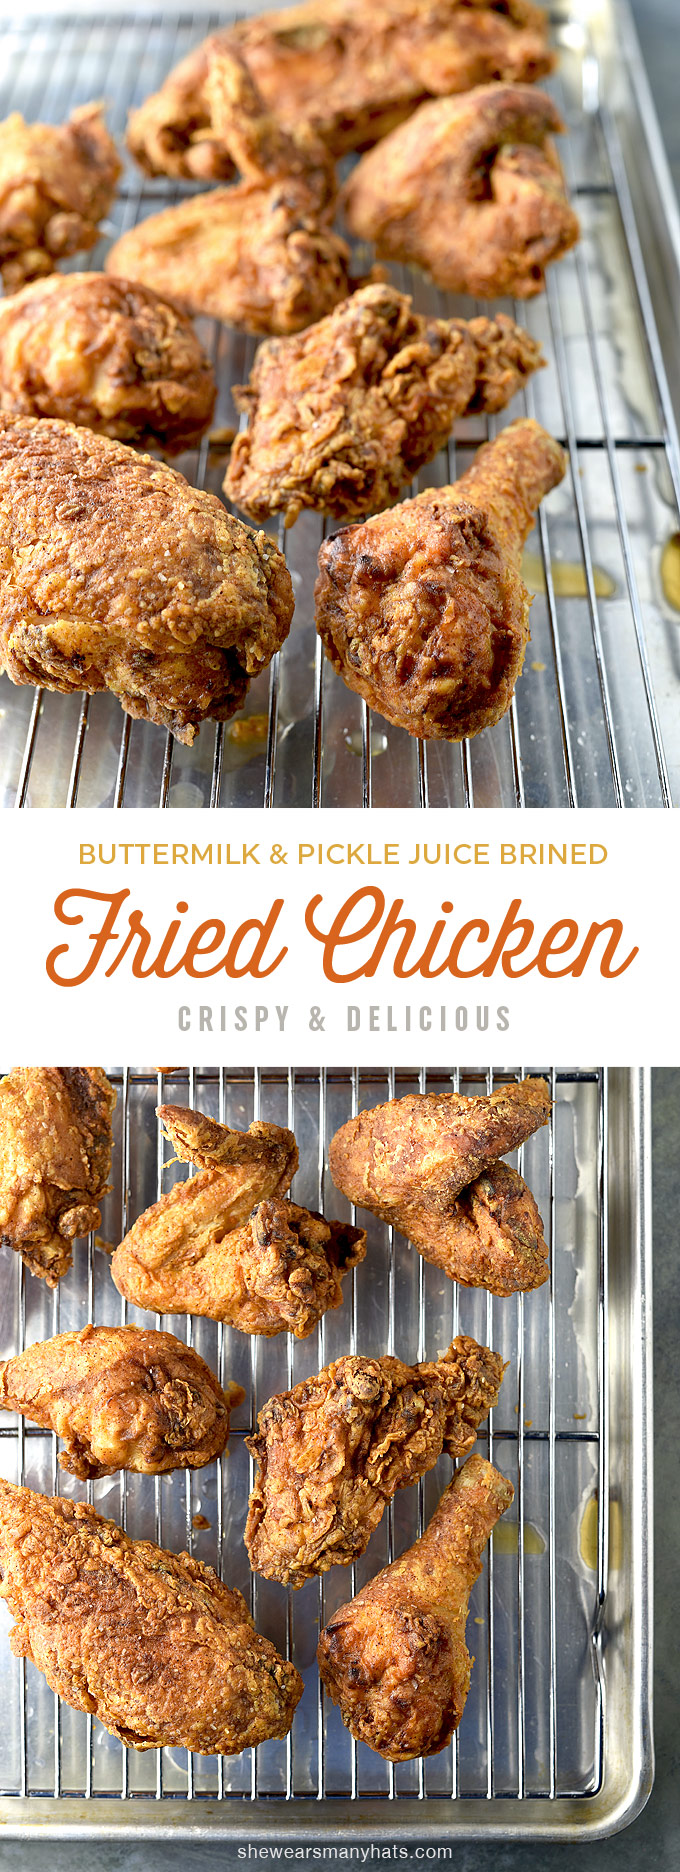 Perfect Fried Chicken Recipe | shewearsmanyhats.com